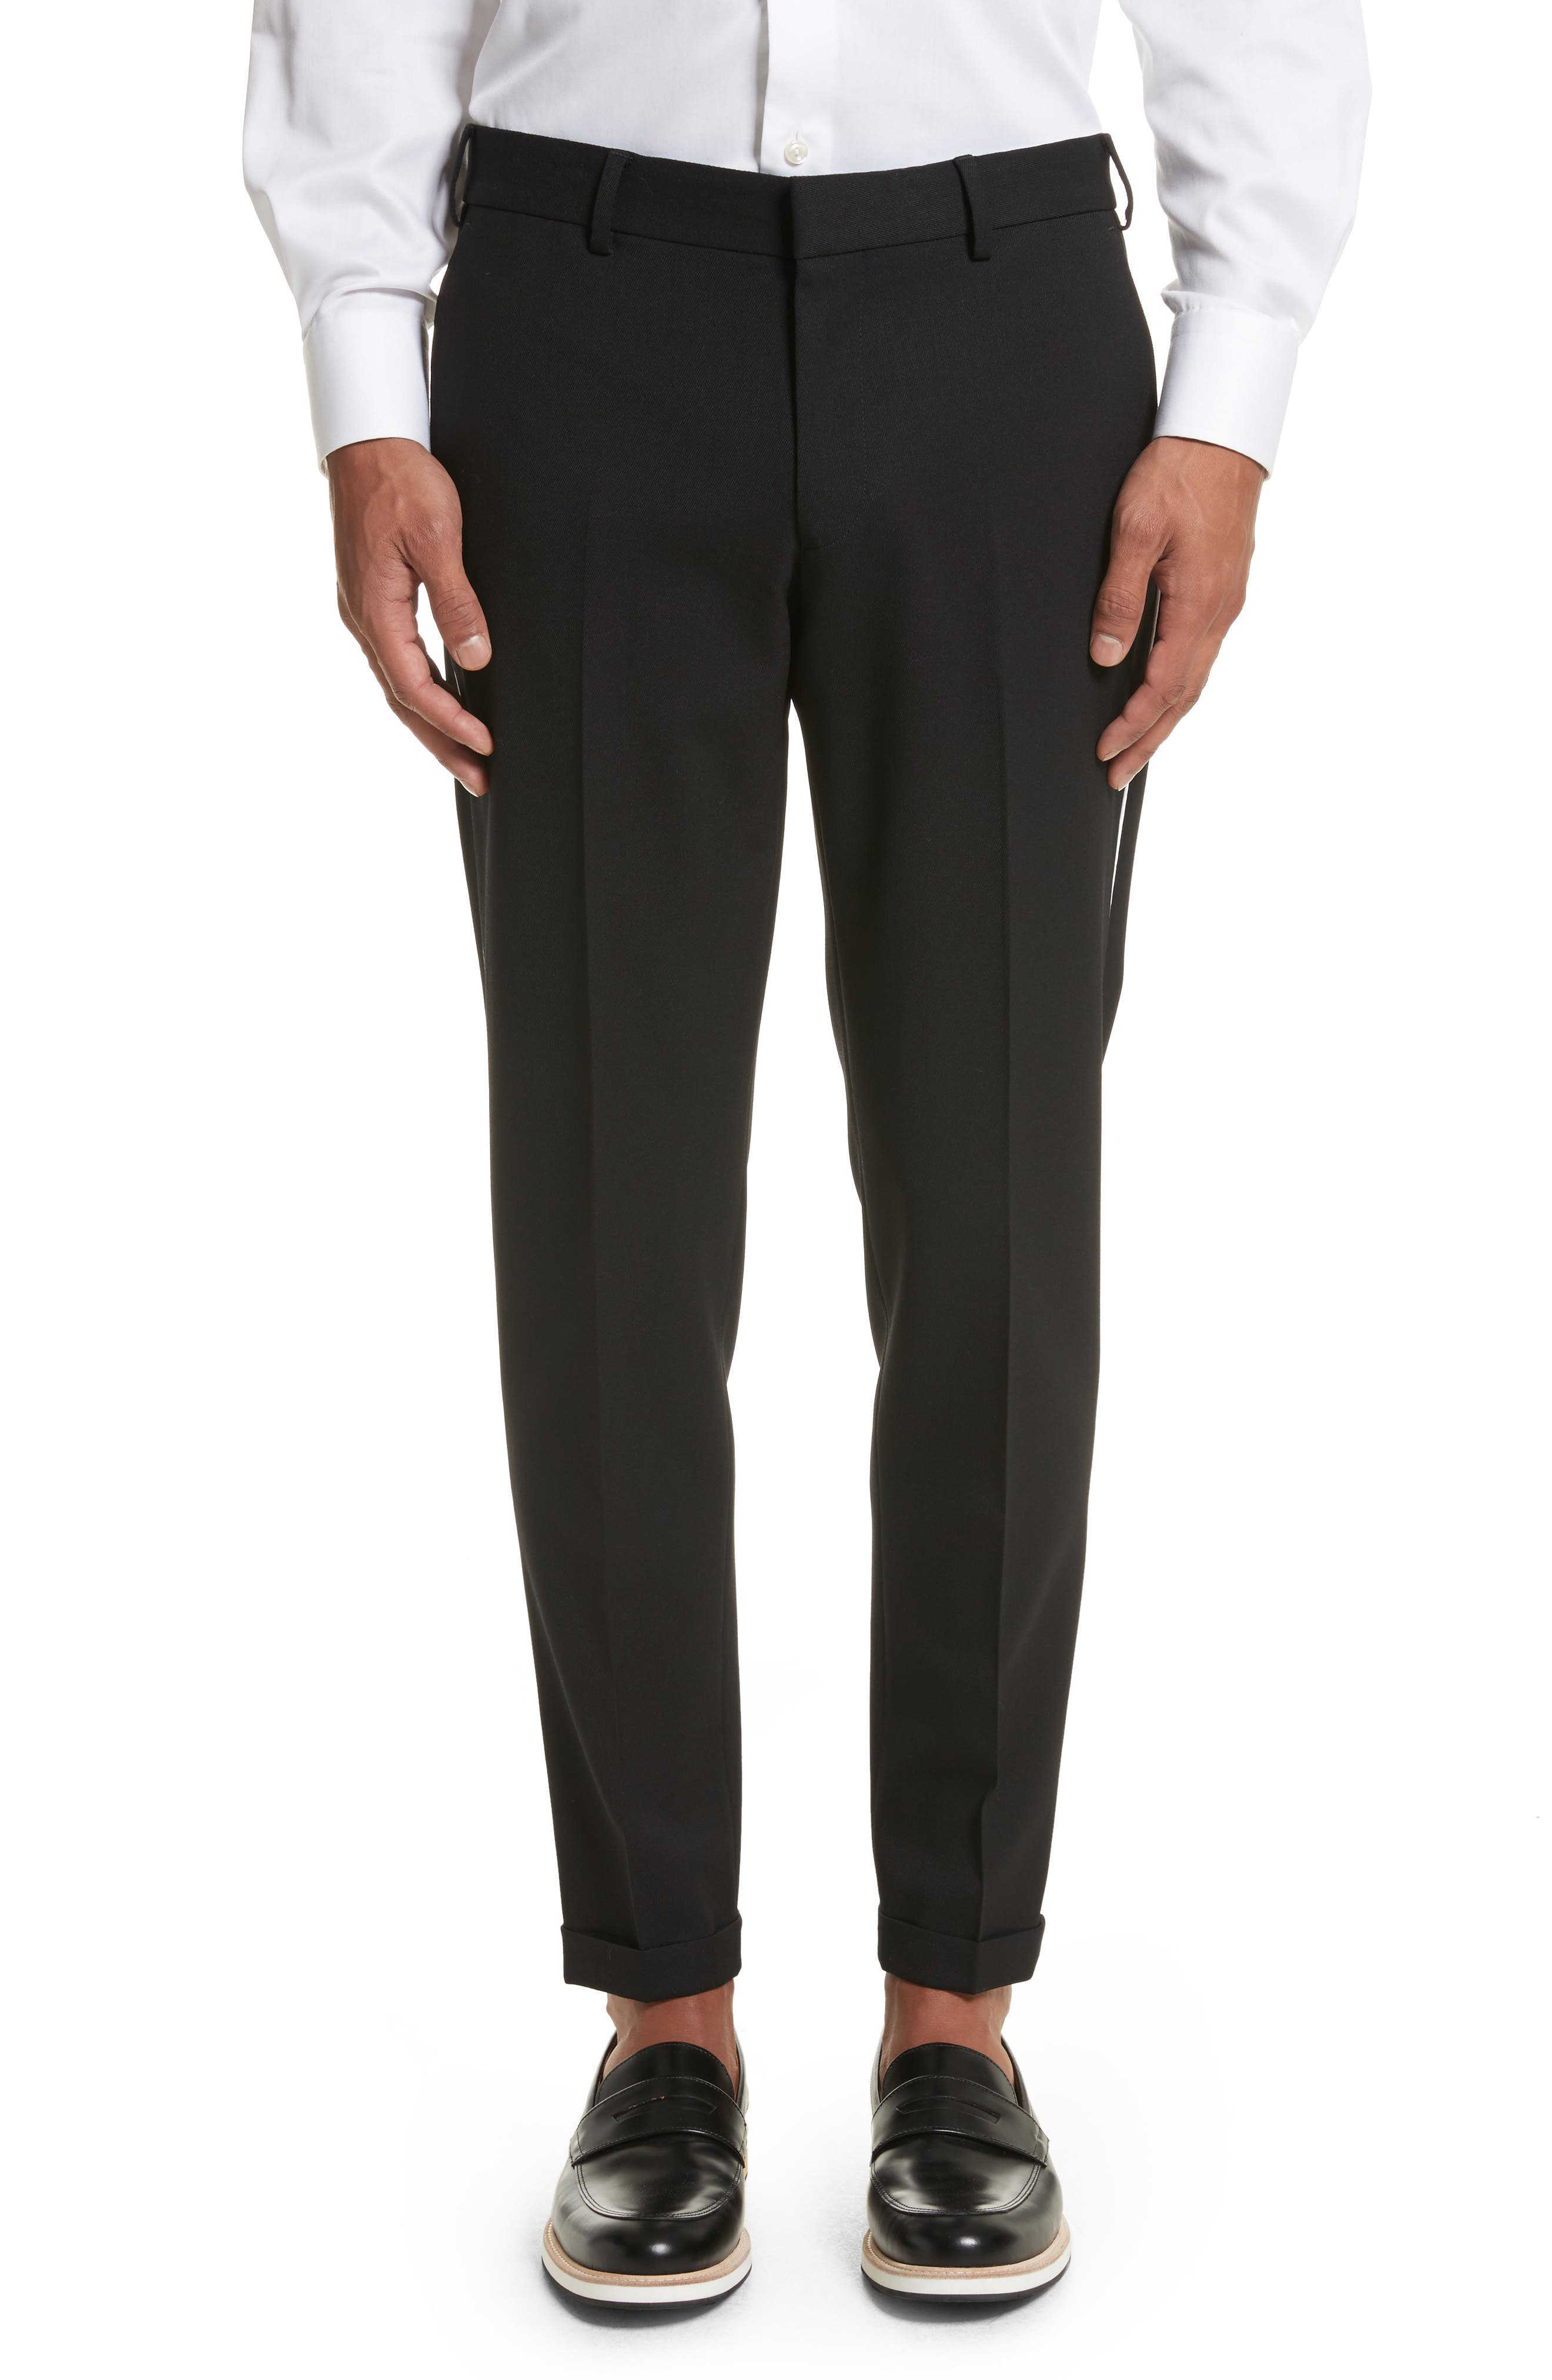 The Kooples Piped Suit Trousers